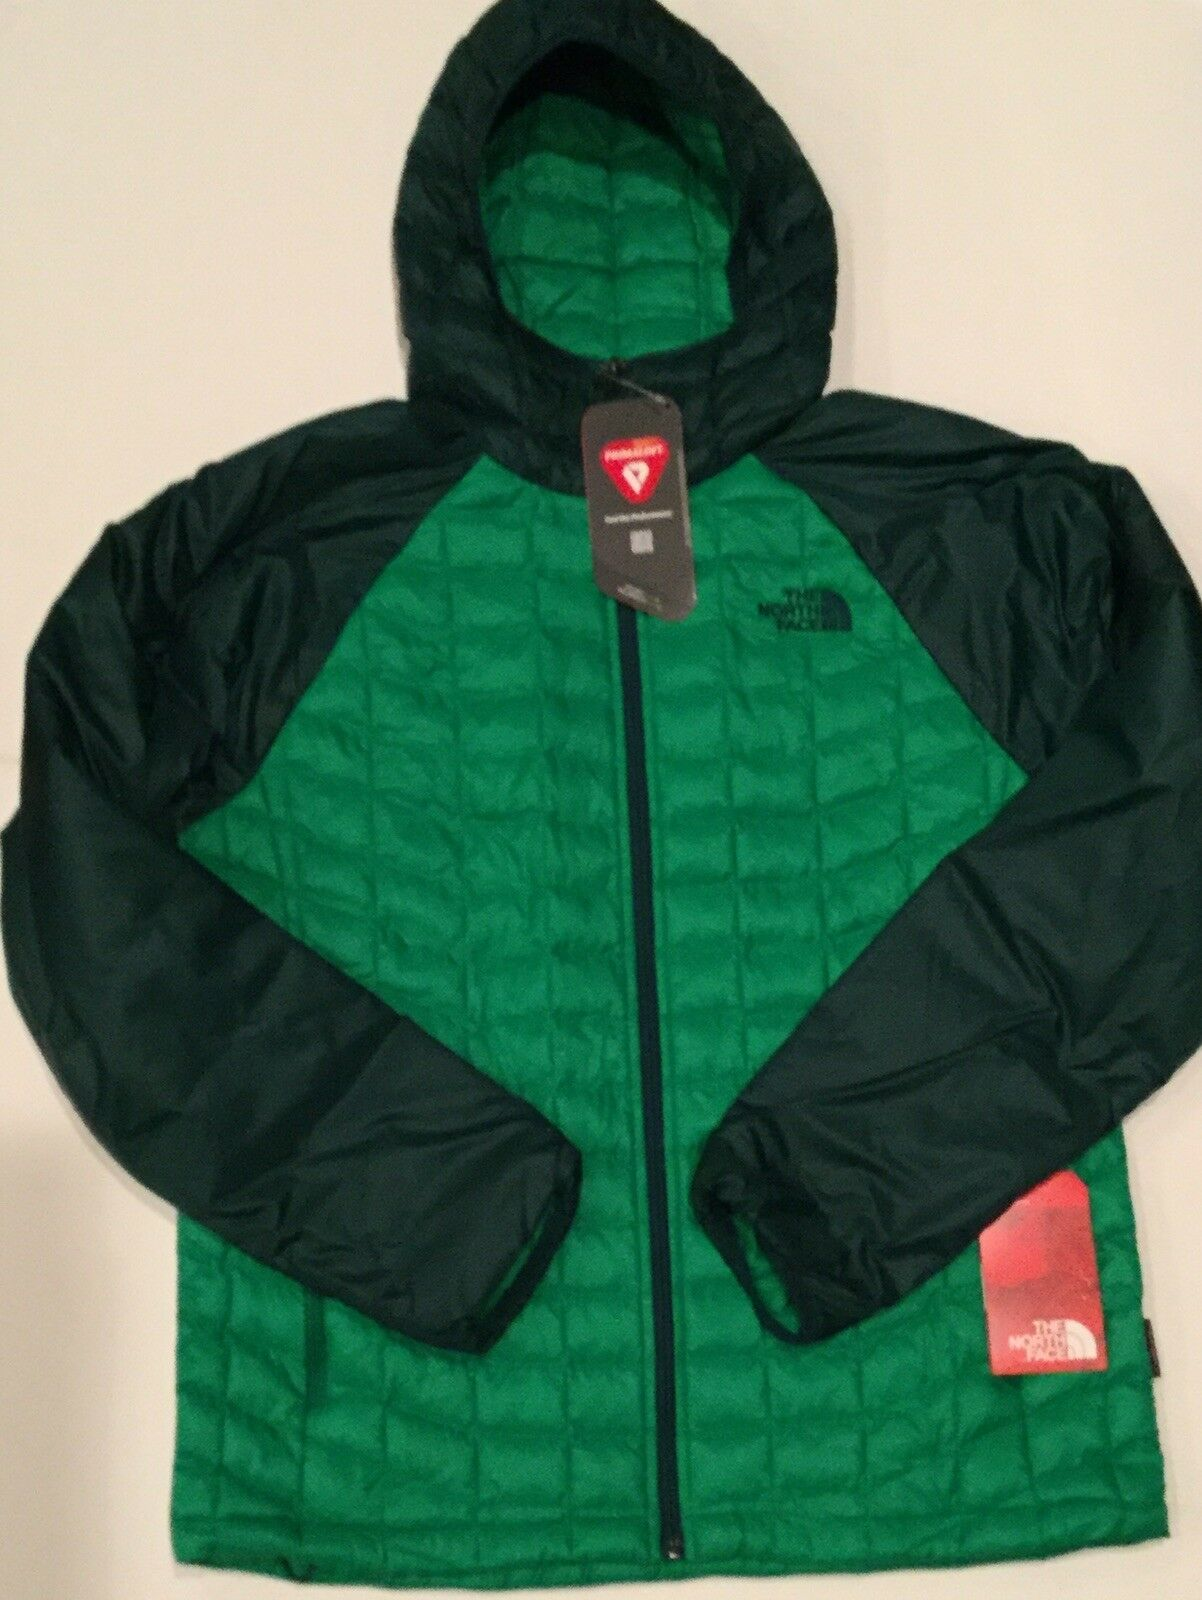 North Face Men's M Thermoball Sport Hoody Botanical Garden  Green & Primary Green  save up to 50%